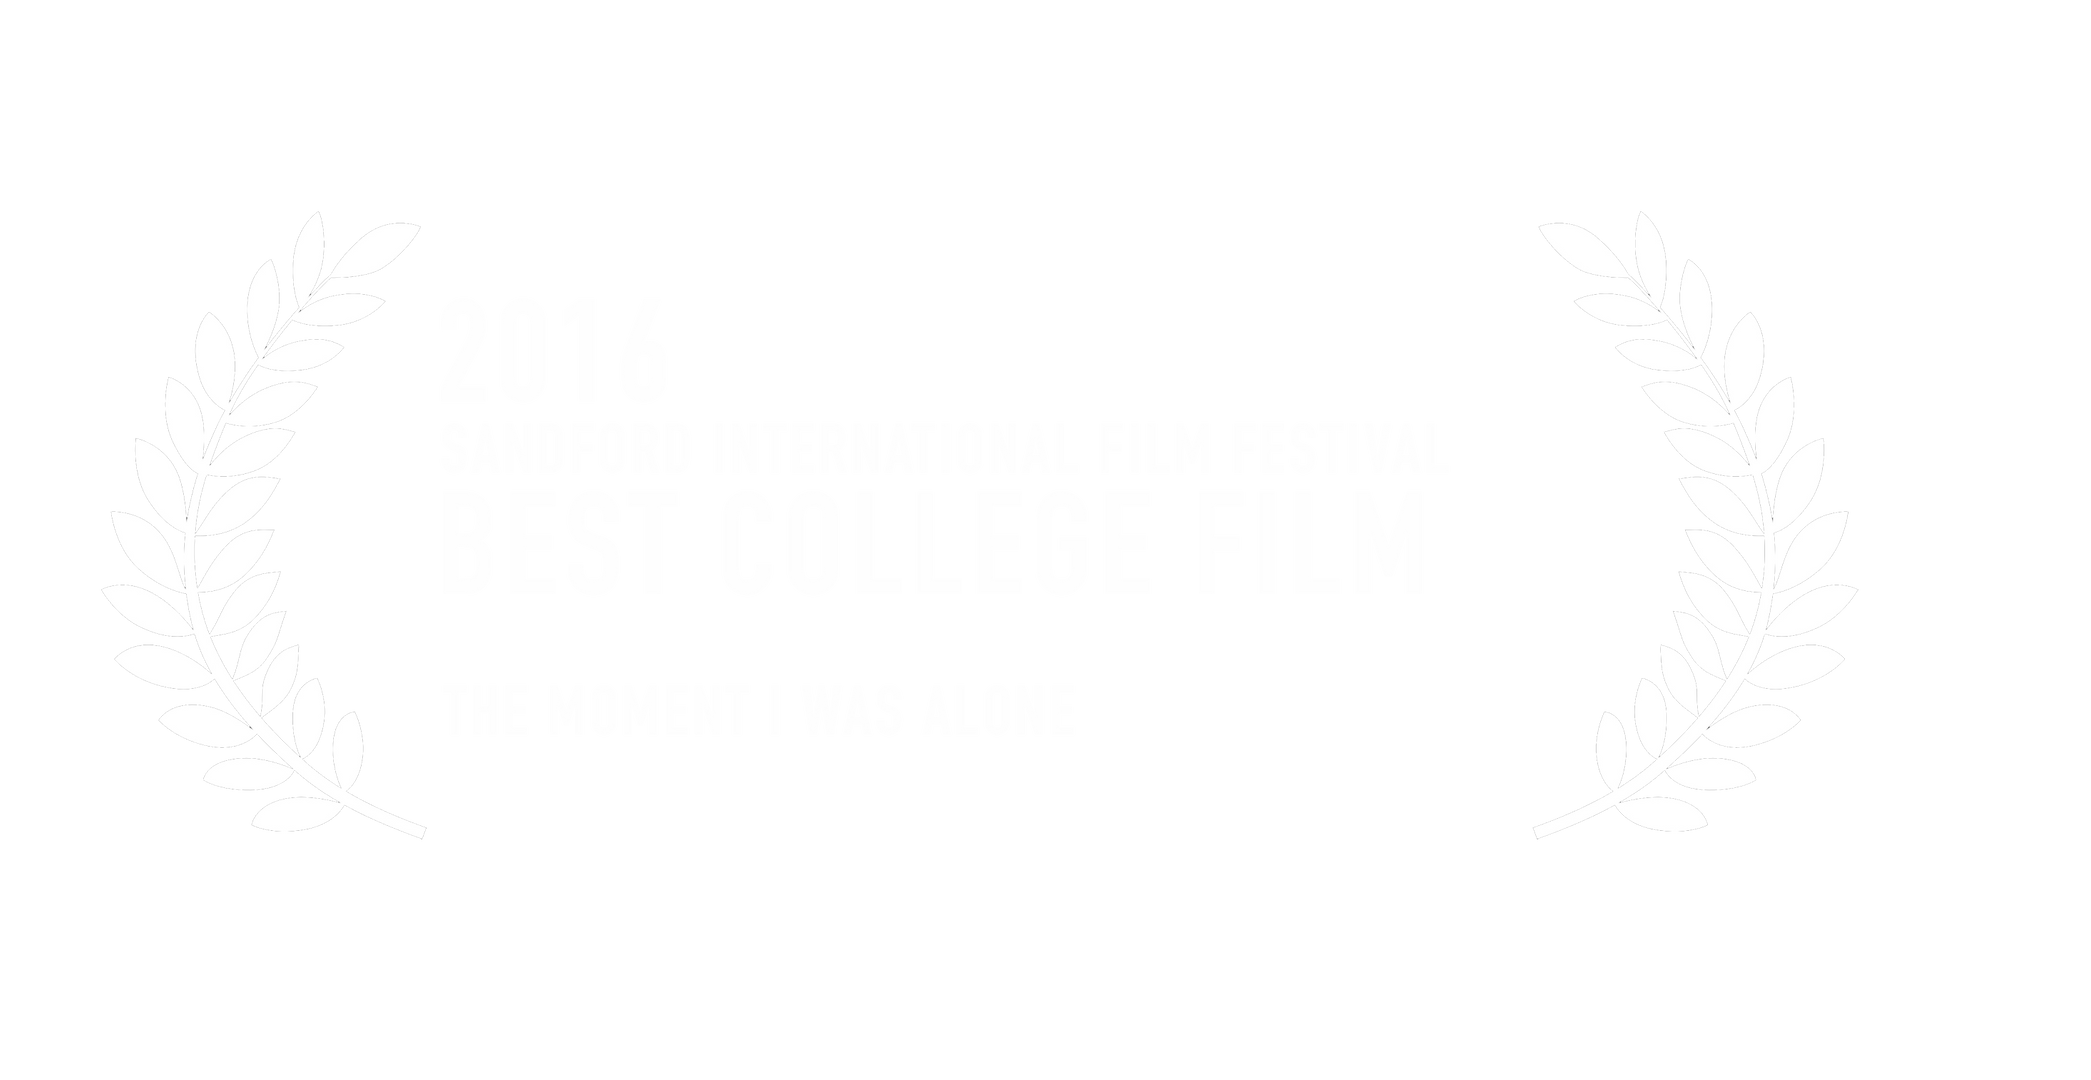 SIFF_BEST COLLEGE FILM.png